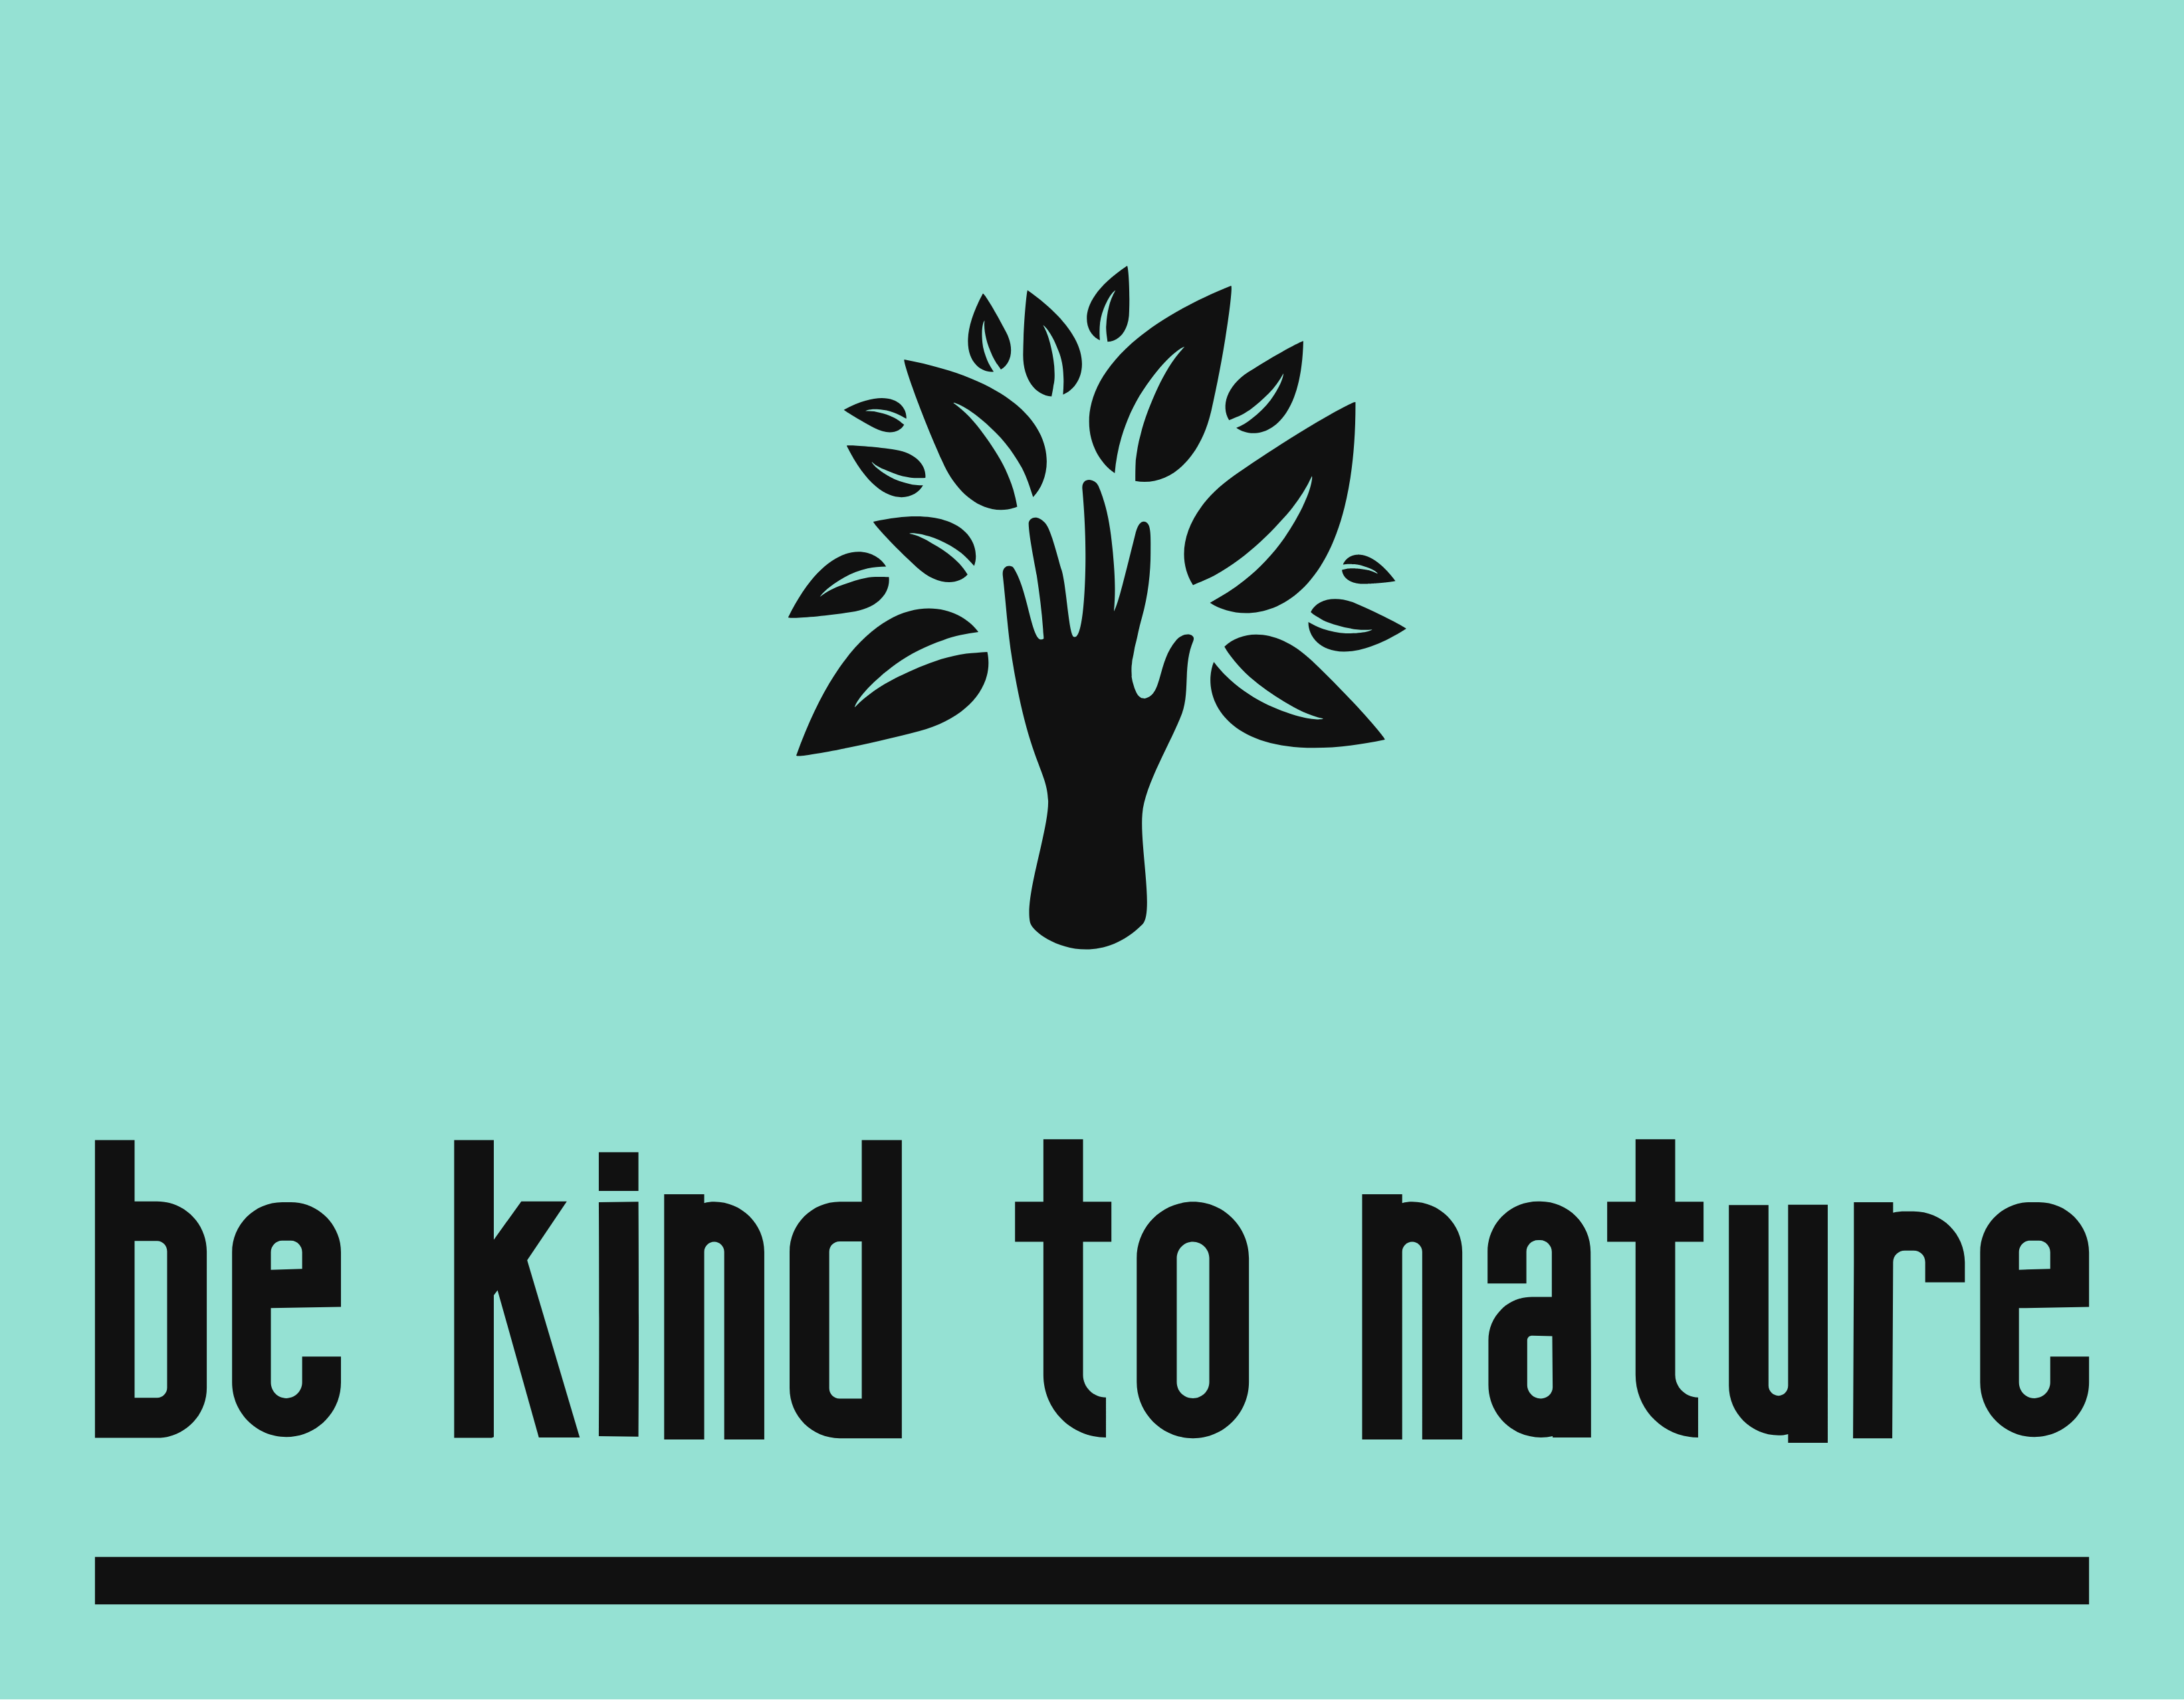 Be Kind to Nature